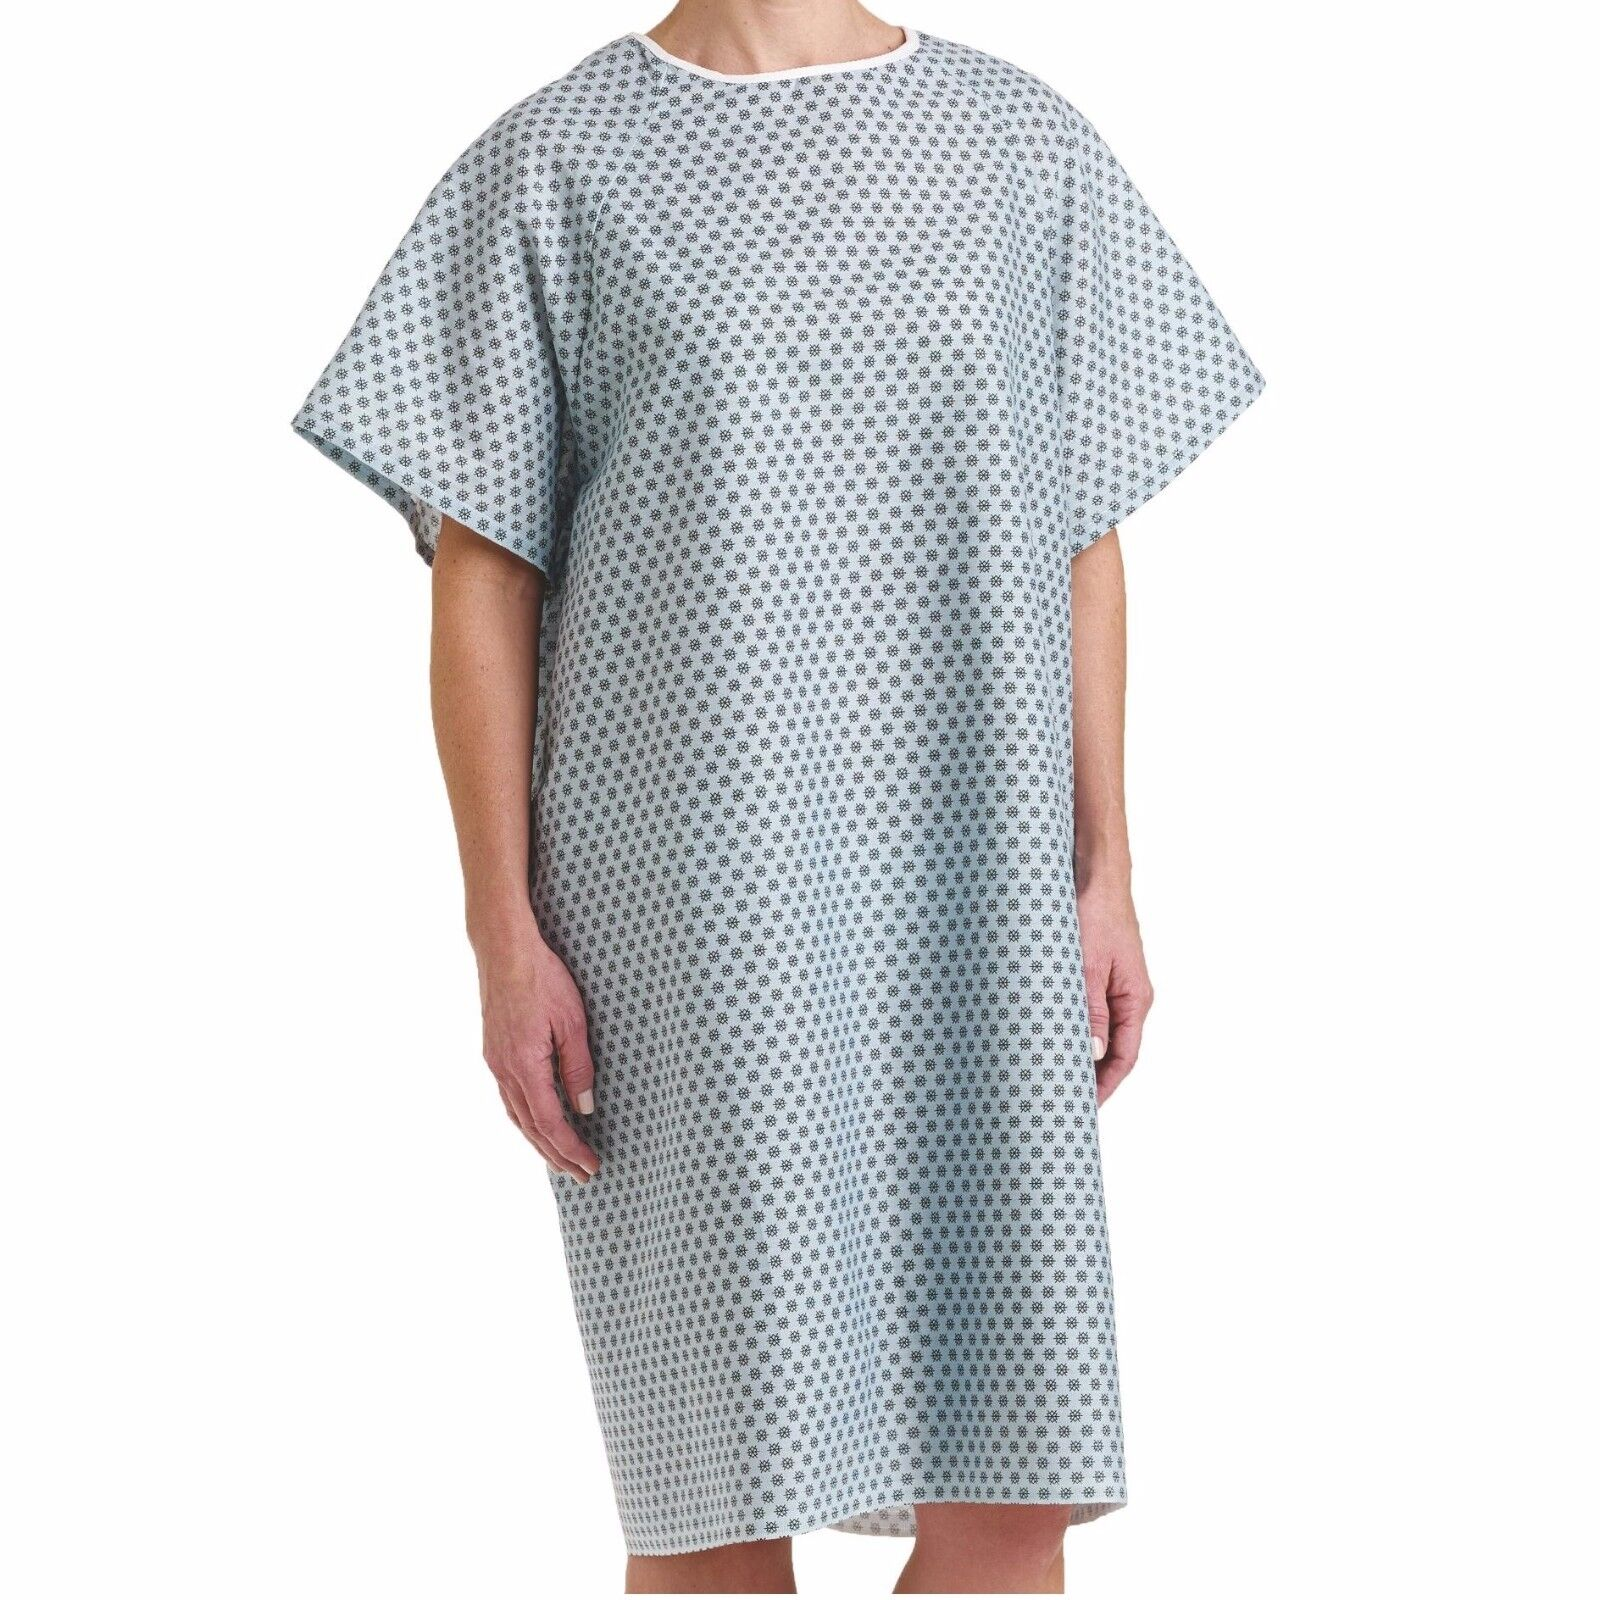 24 NEW HOSPITAL PATIENT GOWN MEDICAL EXAM GOWNS ECONOMY HOSPITAL ...